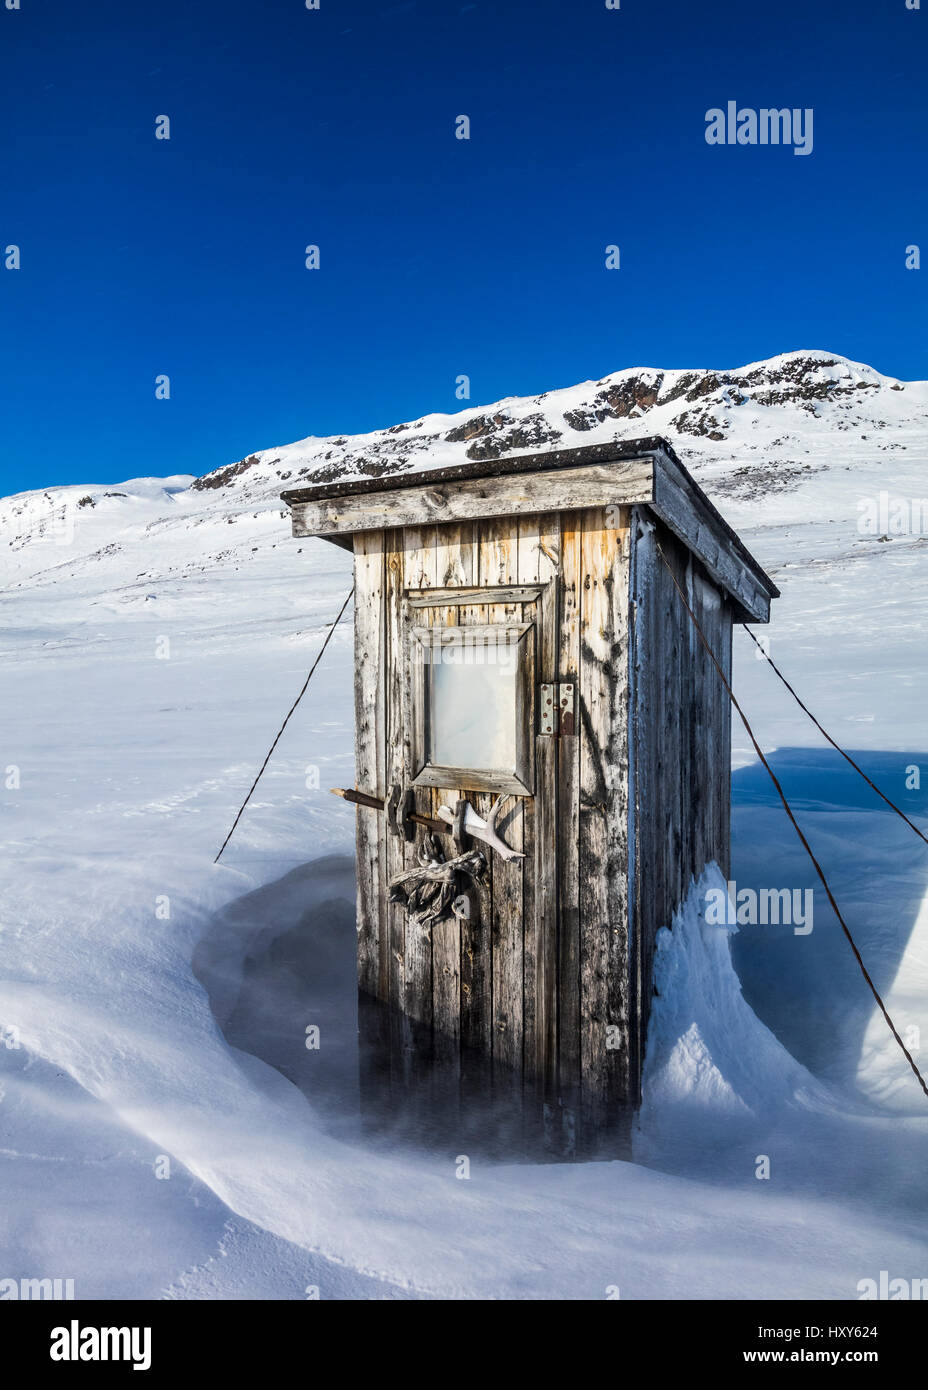 Wilderness outhouse - Stock Image